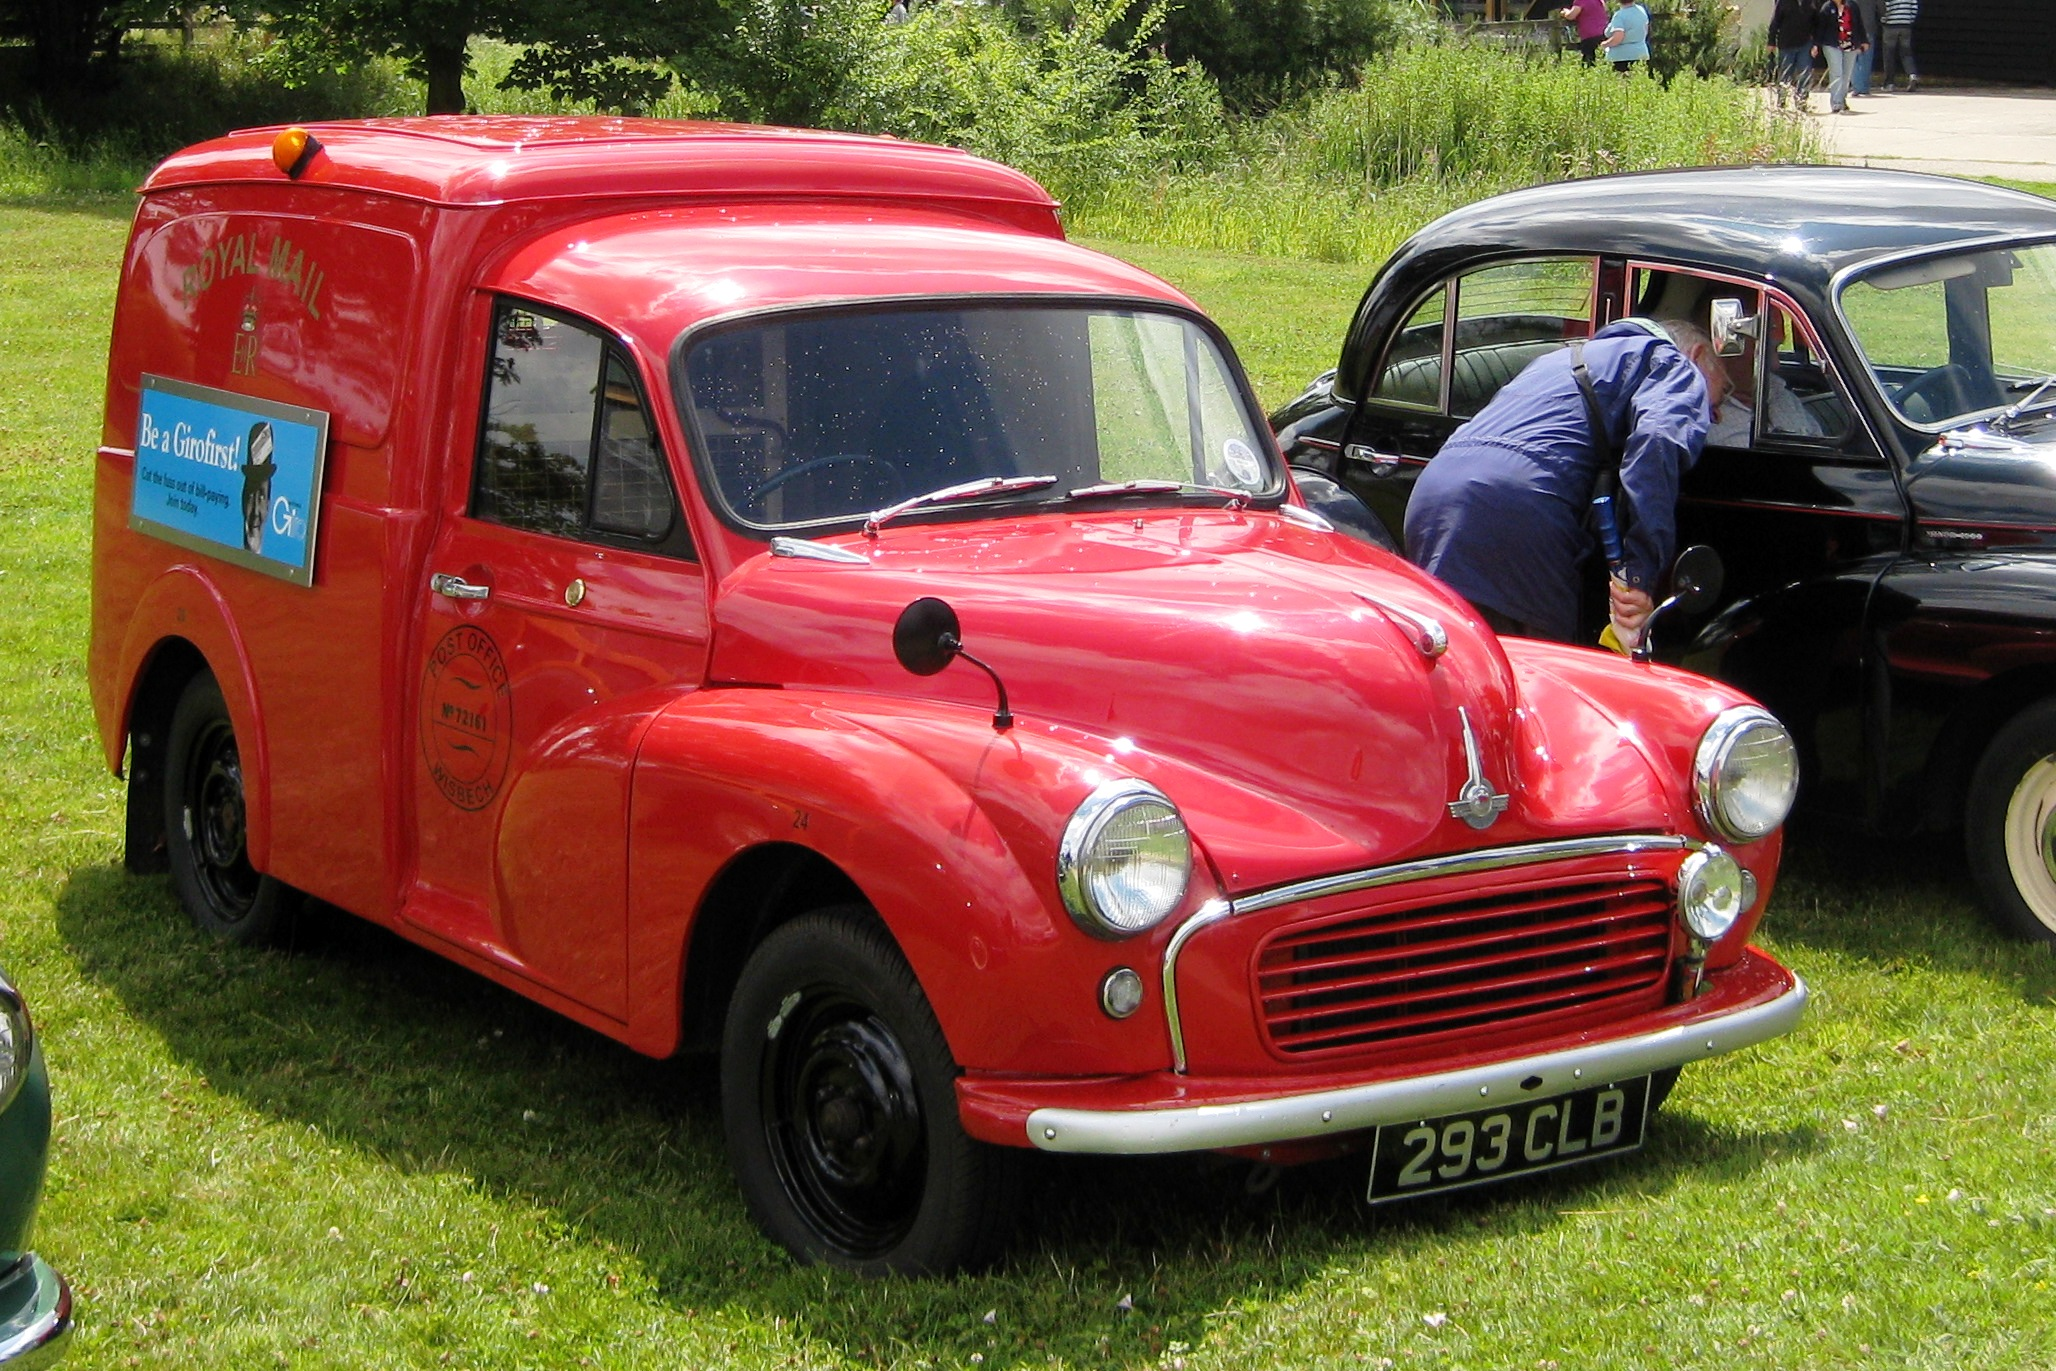 File:Morris Minor van painted for UK mail delivery.JPG - Wikimedia ...